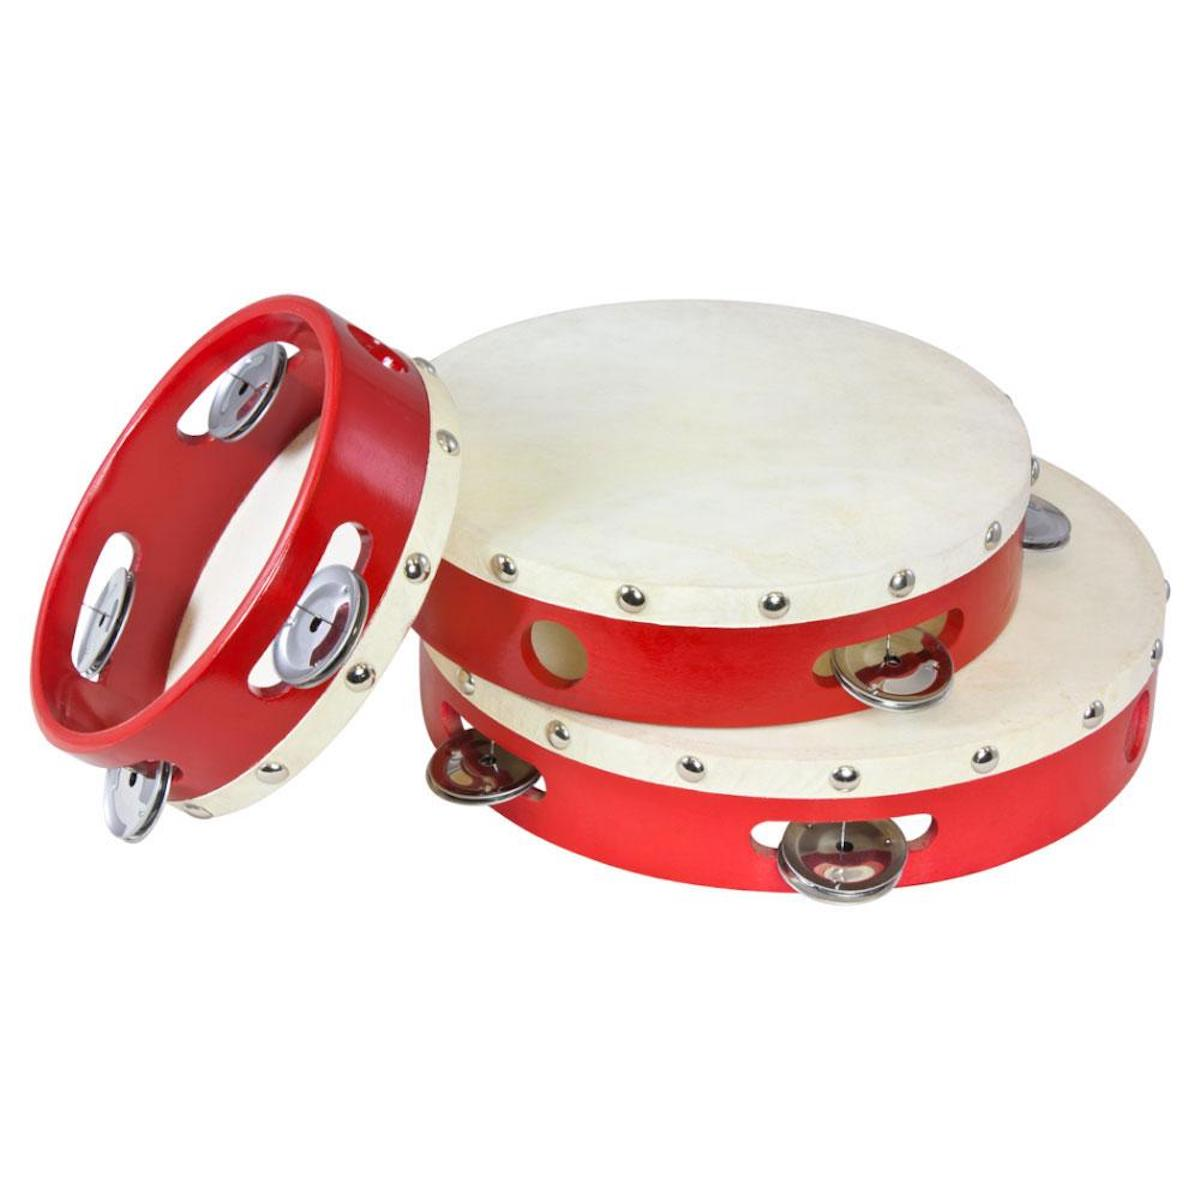 "Percussion Plus Tambourine Wood Shells - 6"", 8"" and 9"" pack"